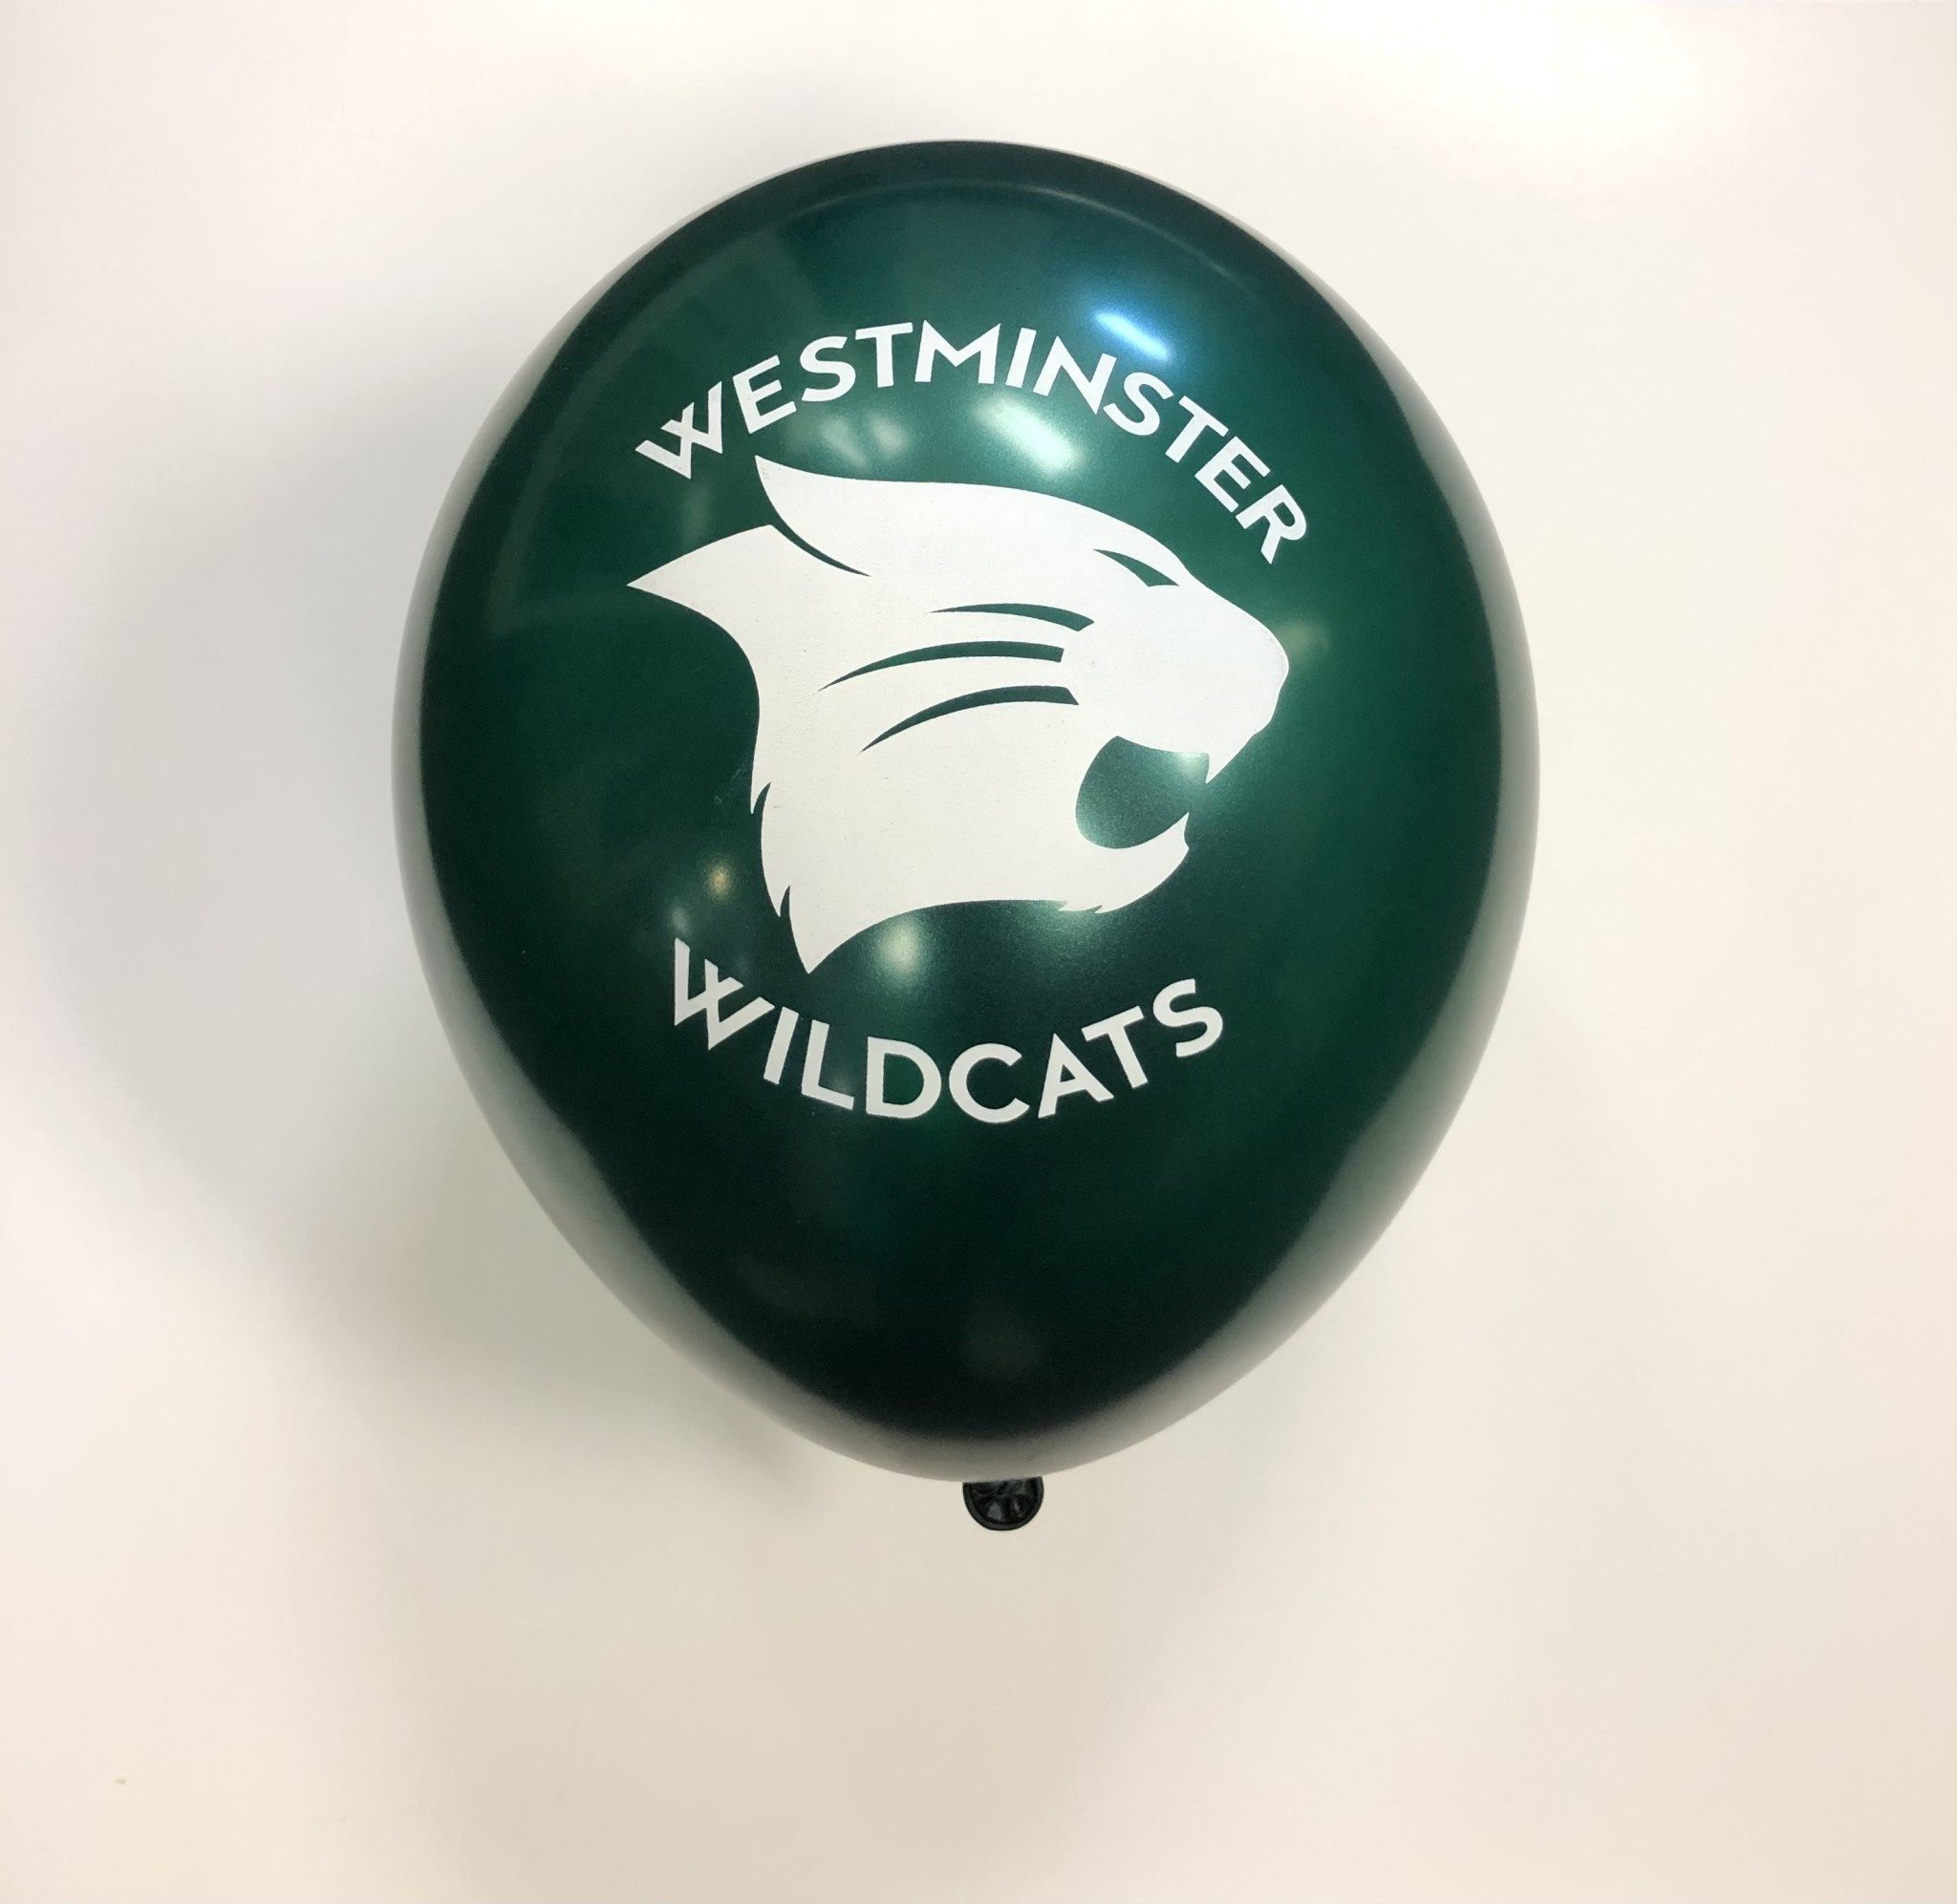 Balloon: Westminster